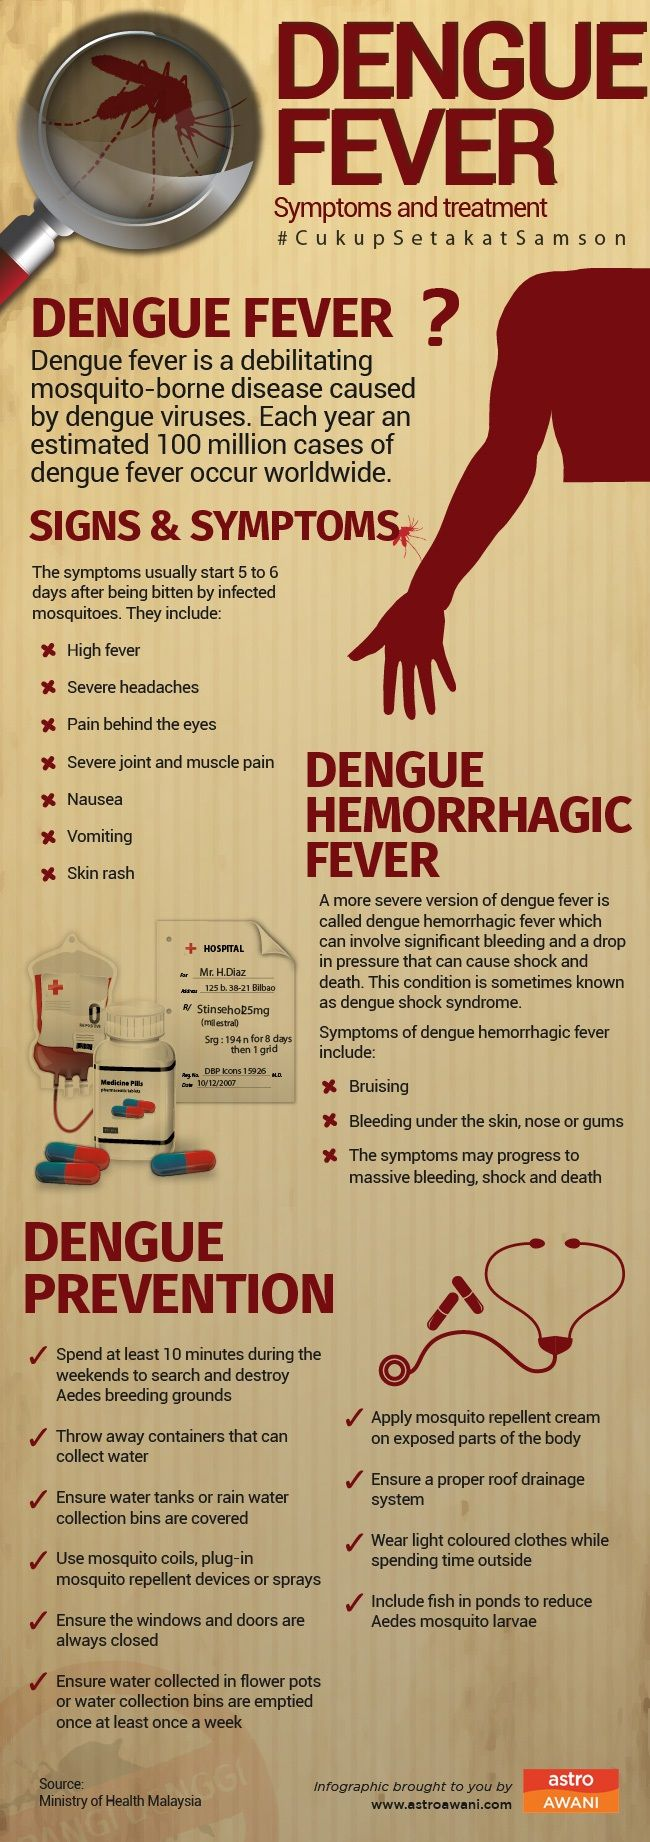 Unfortunately there is no vaccine to prevent dengue fever. However, the best way to try to prevent is to not come into mosquitos that carry the disease.